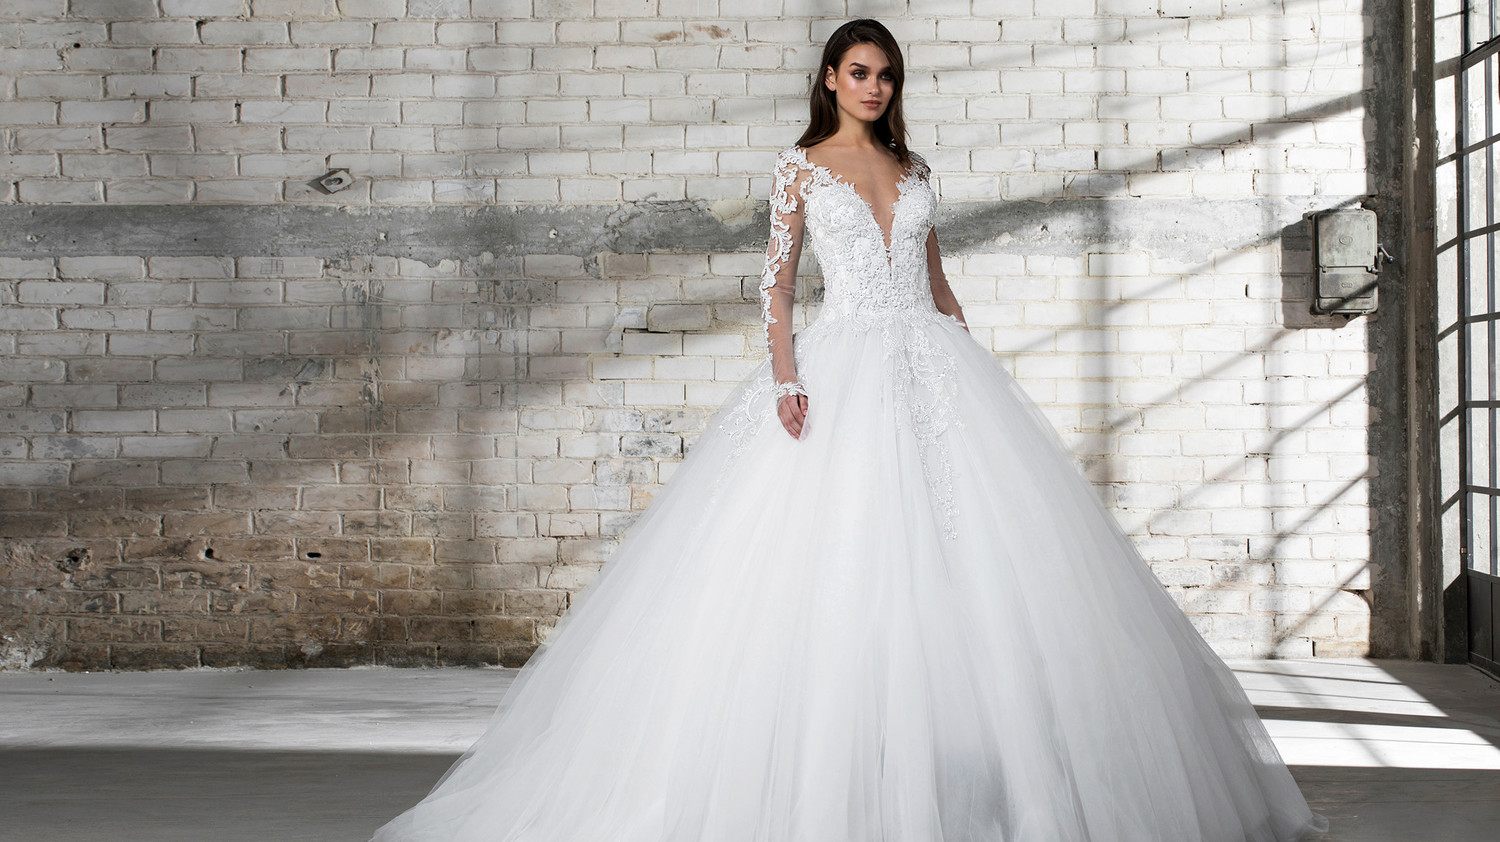 7045ff0b4ae7f Pnina Tornai for Kleinfeld Spring 2019 Wedding Dress Collection | Martha  Stewart Weddings